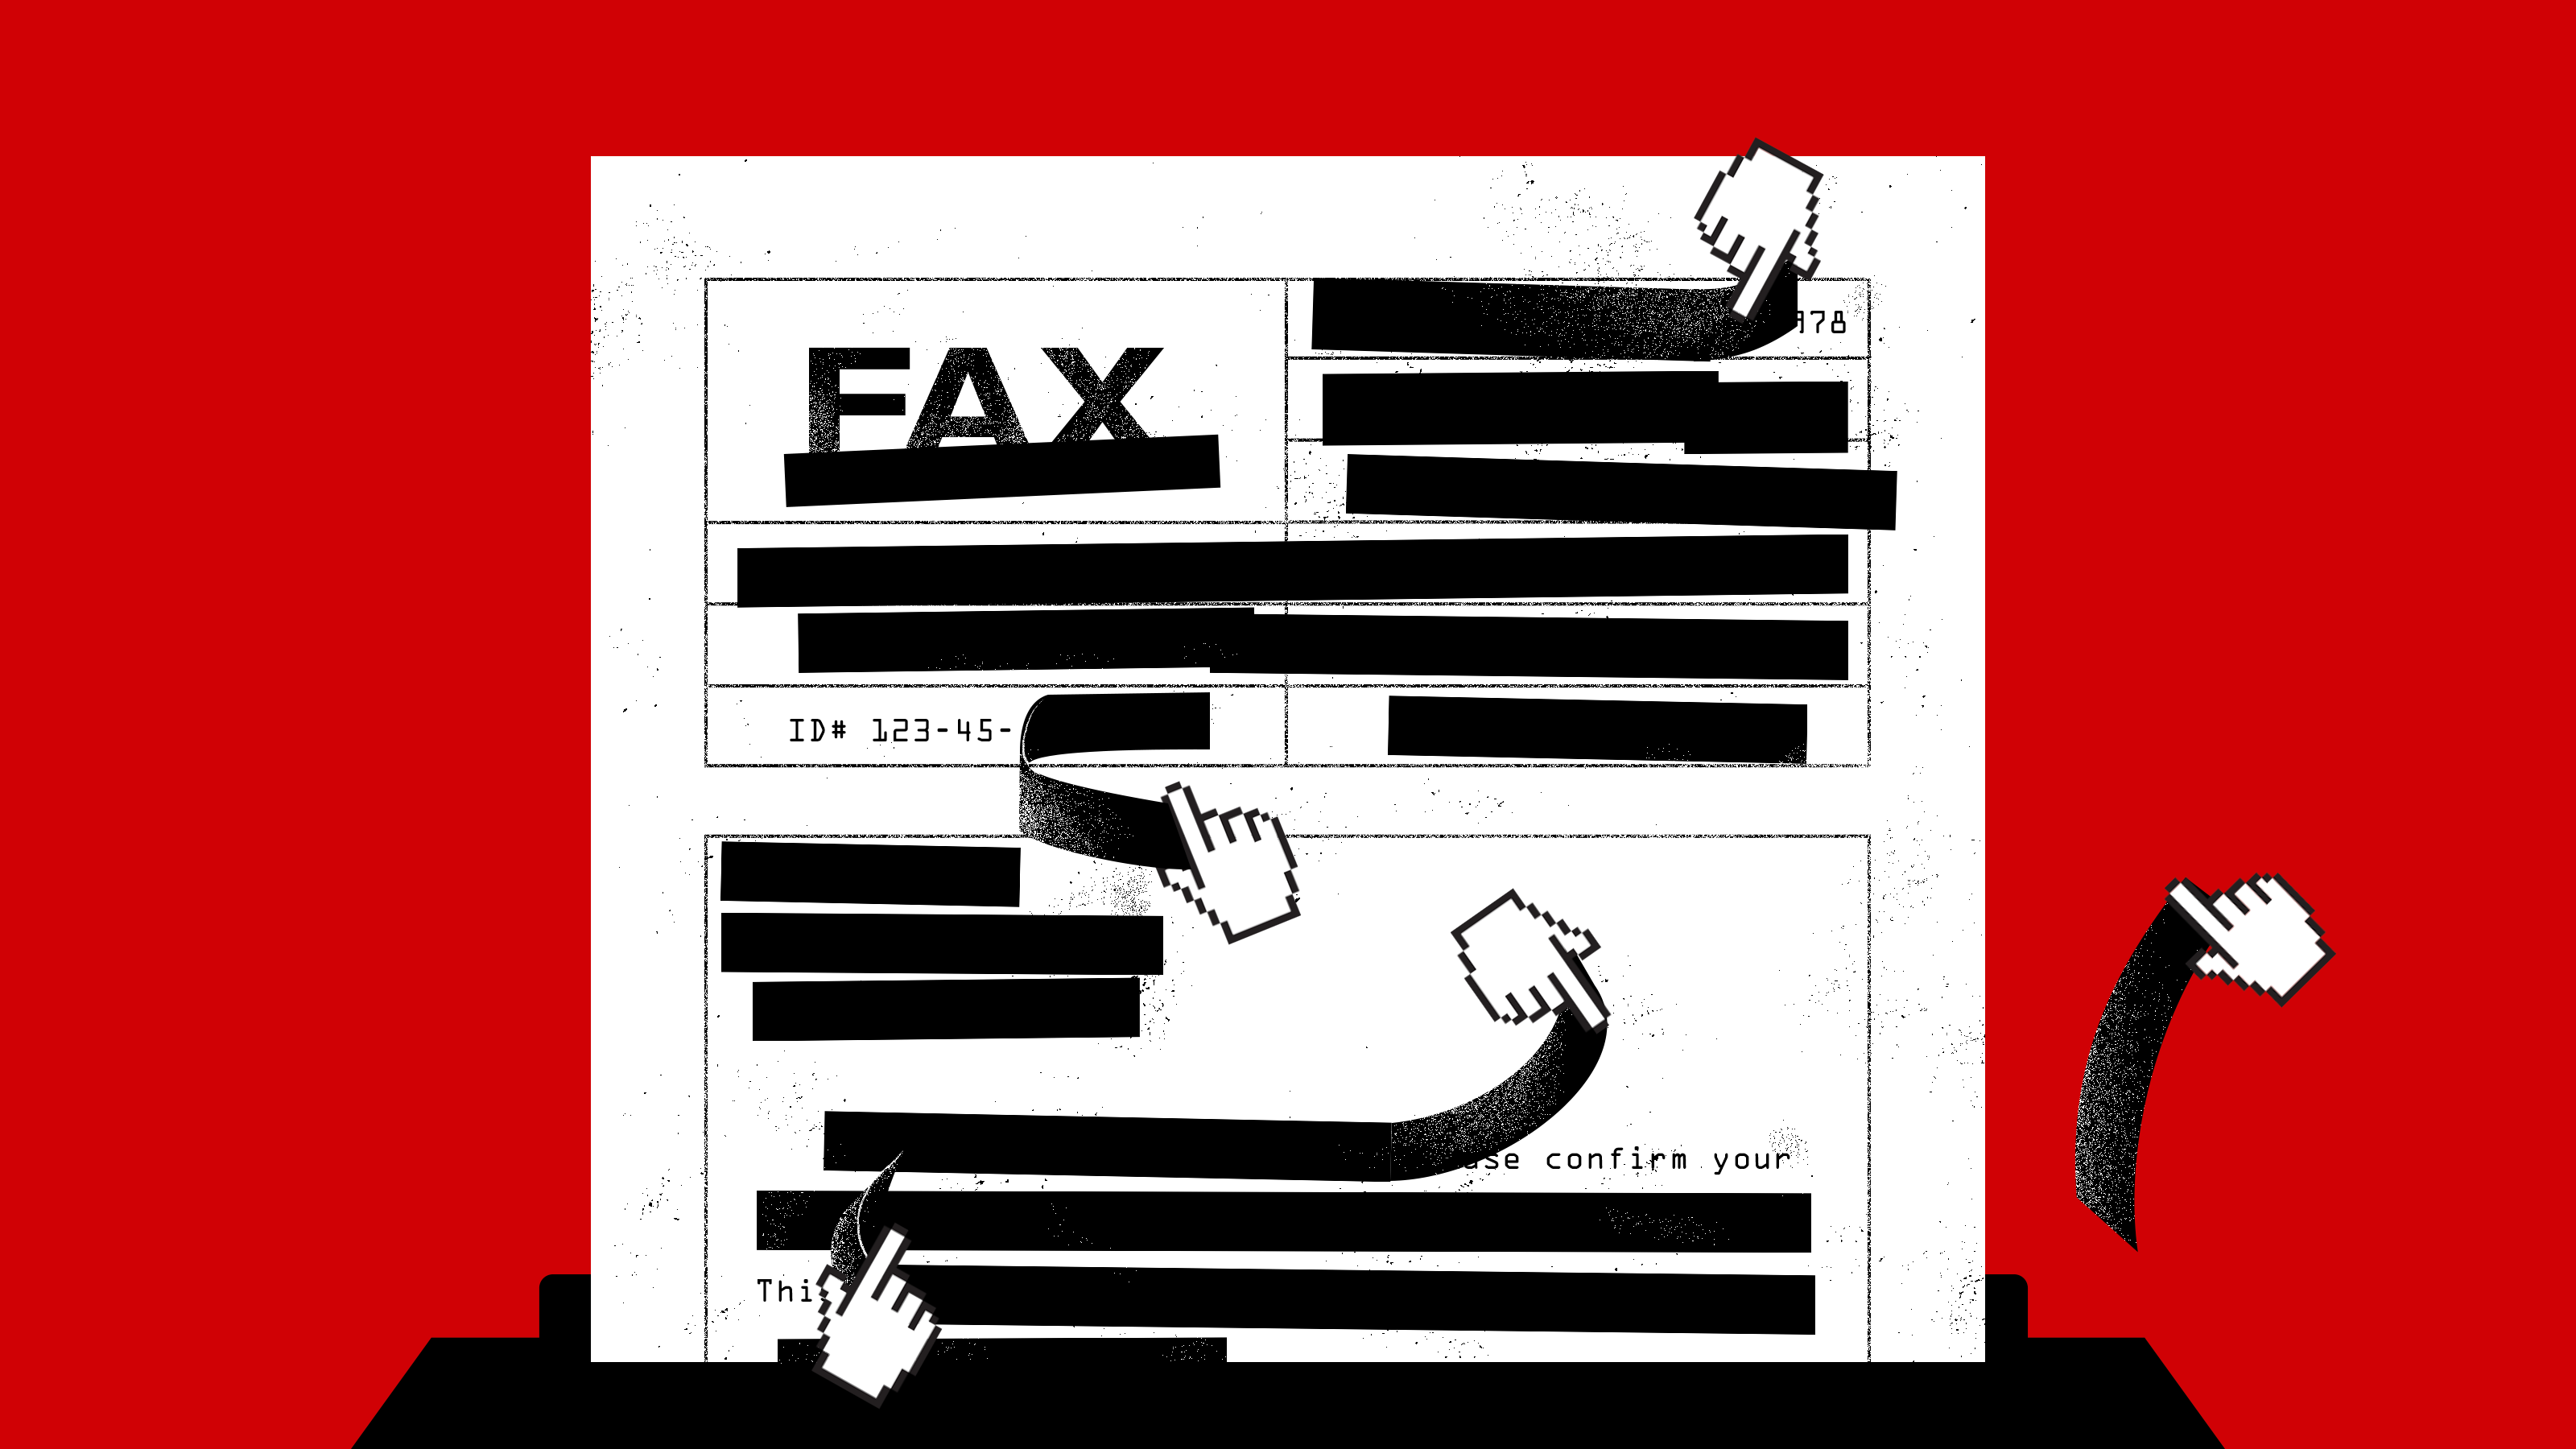 Beware Sending A Fax Online, It Might Not Be As Private As You Think